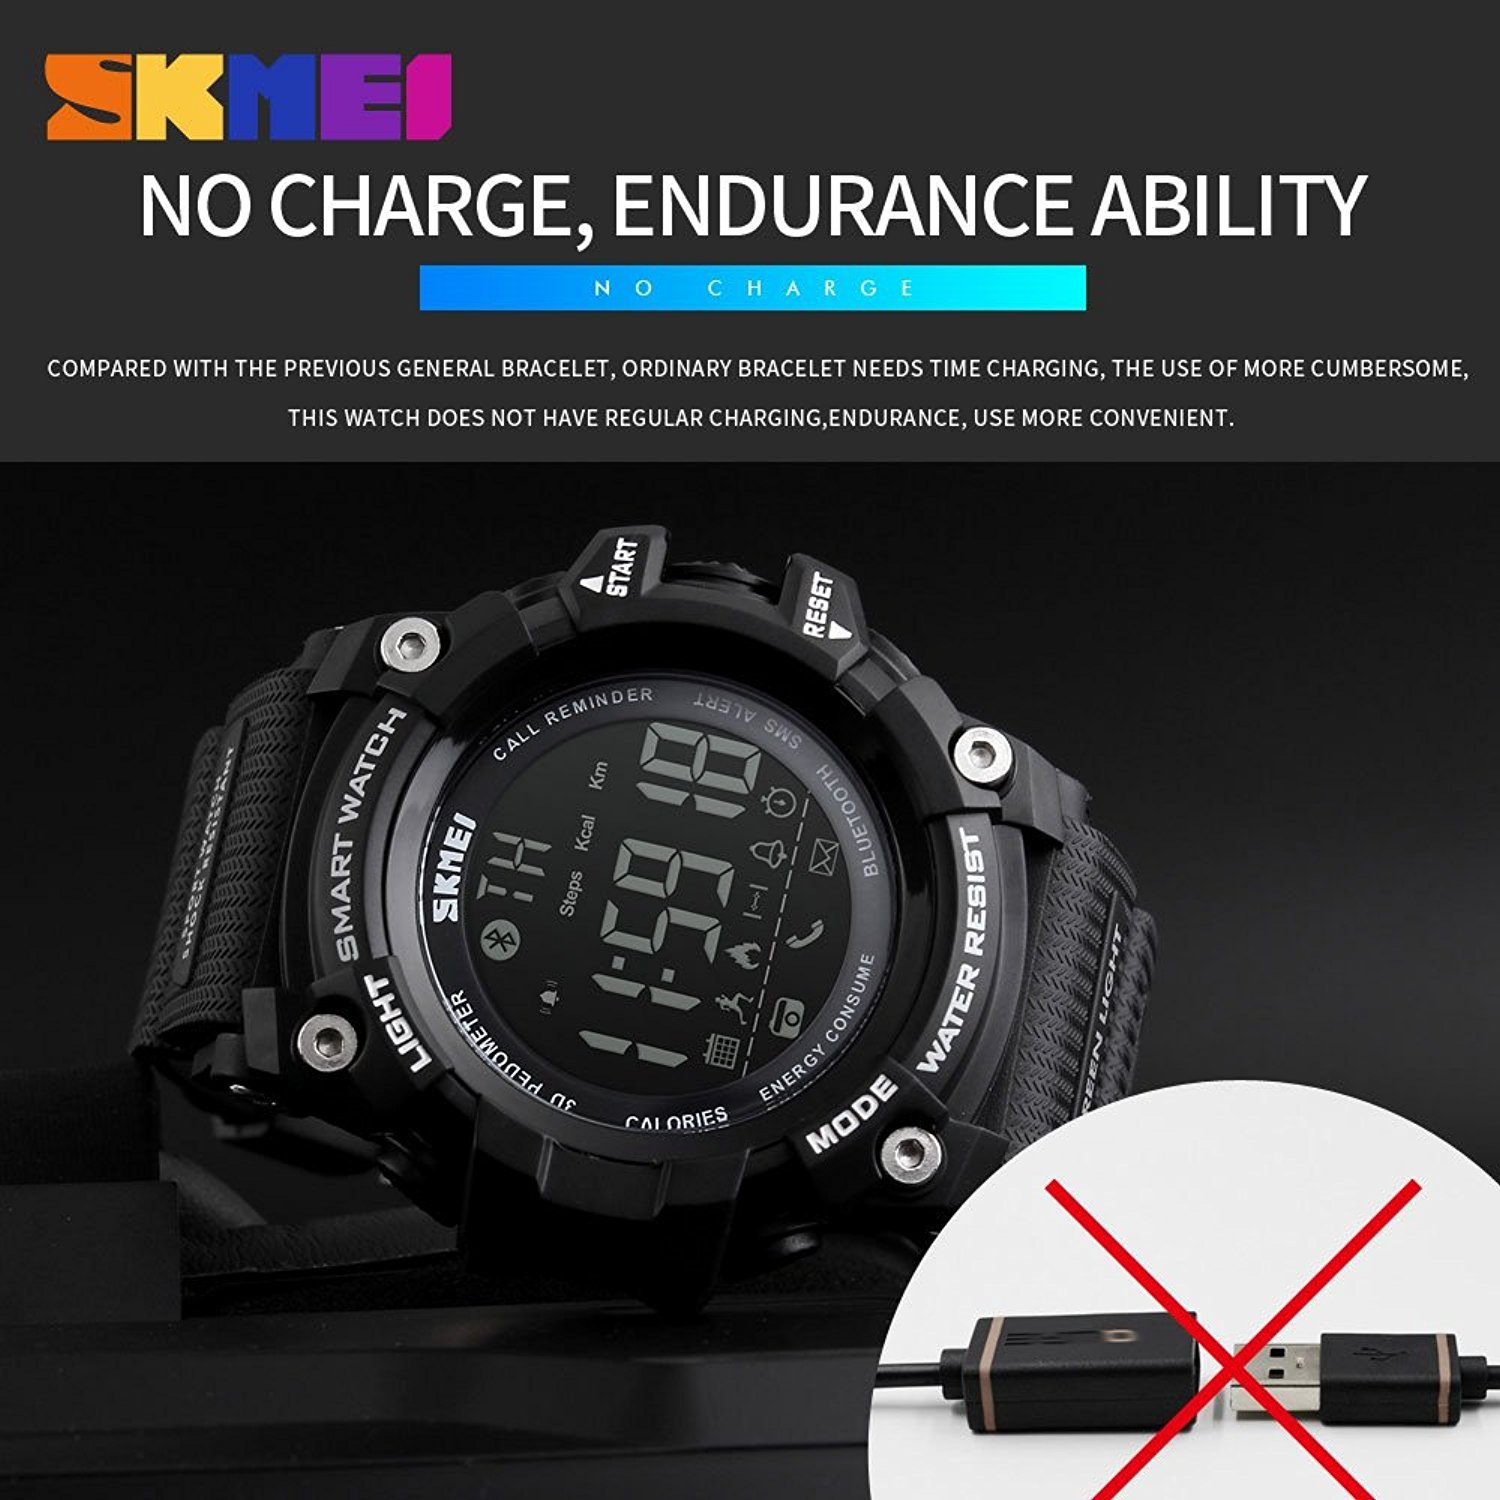 Amazon.com: Mastop Men Outdoor Sport Smart Watch Fashion Digital Watches Fitness Tracker Bluetooth iOS 4.0 Android Waterproof Wristwatch: Watches